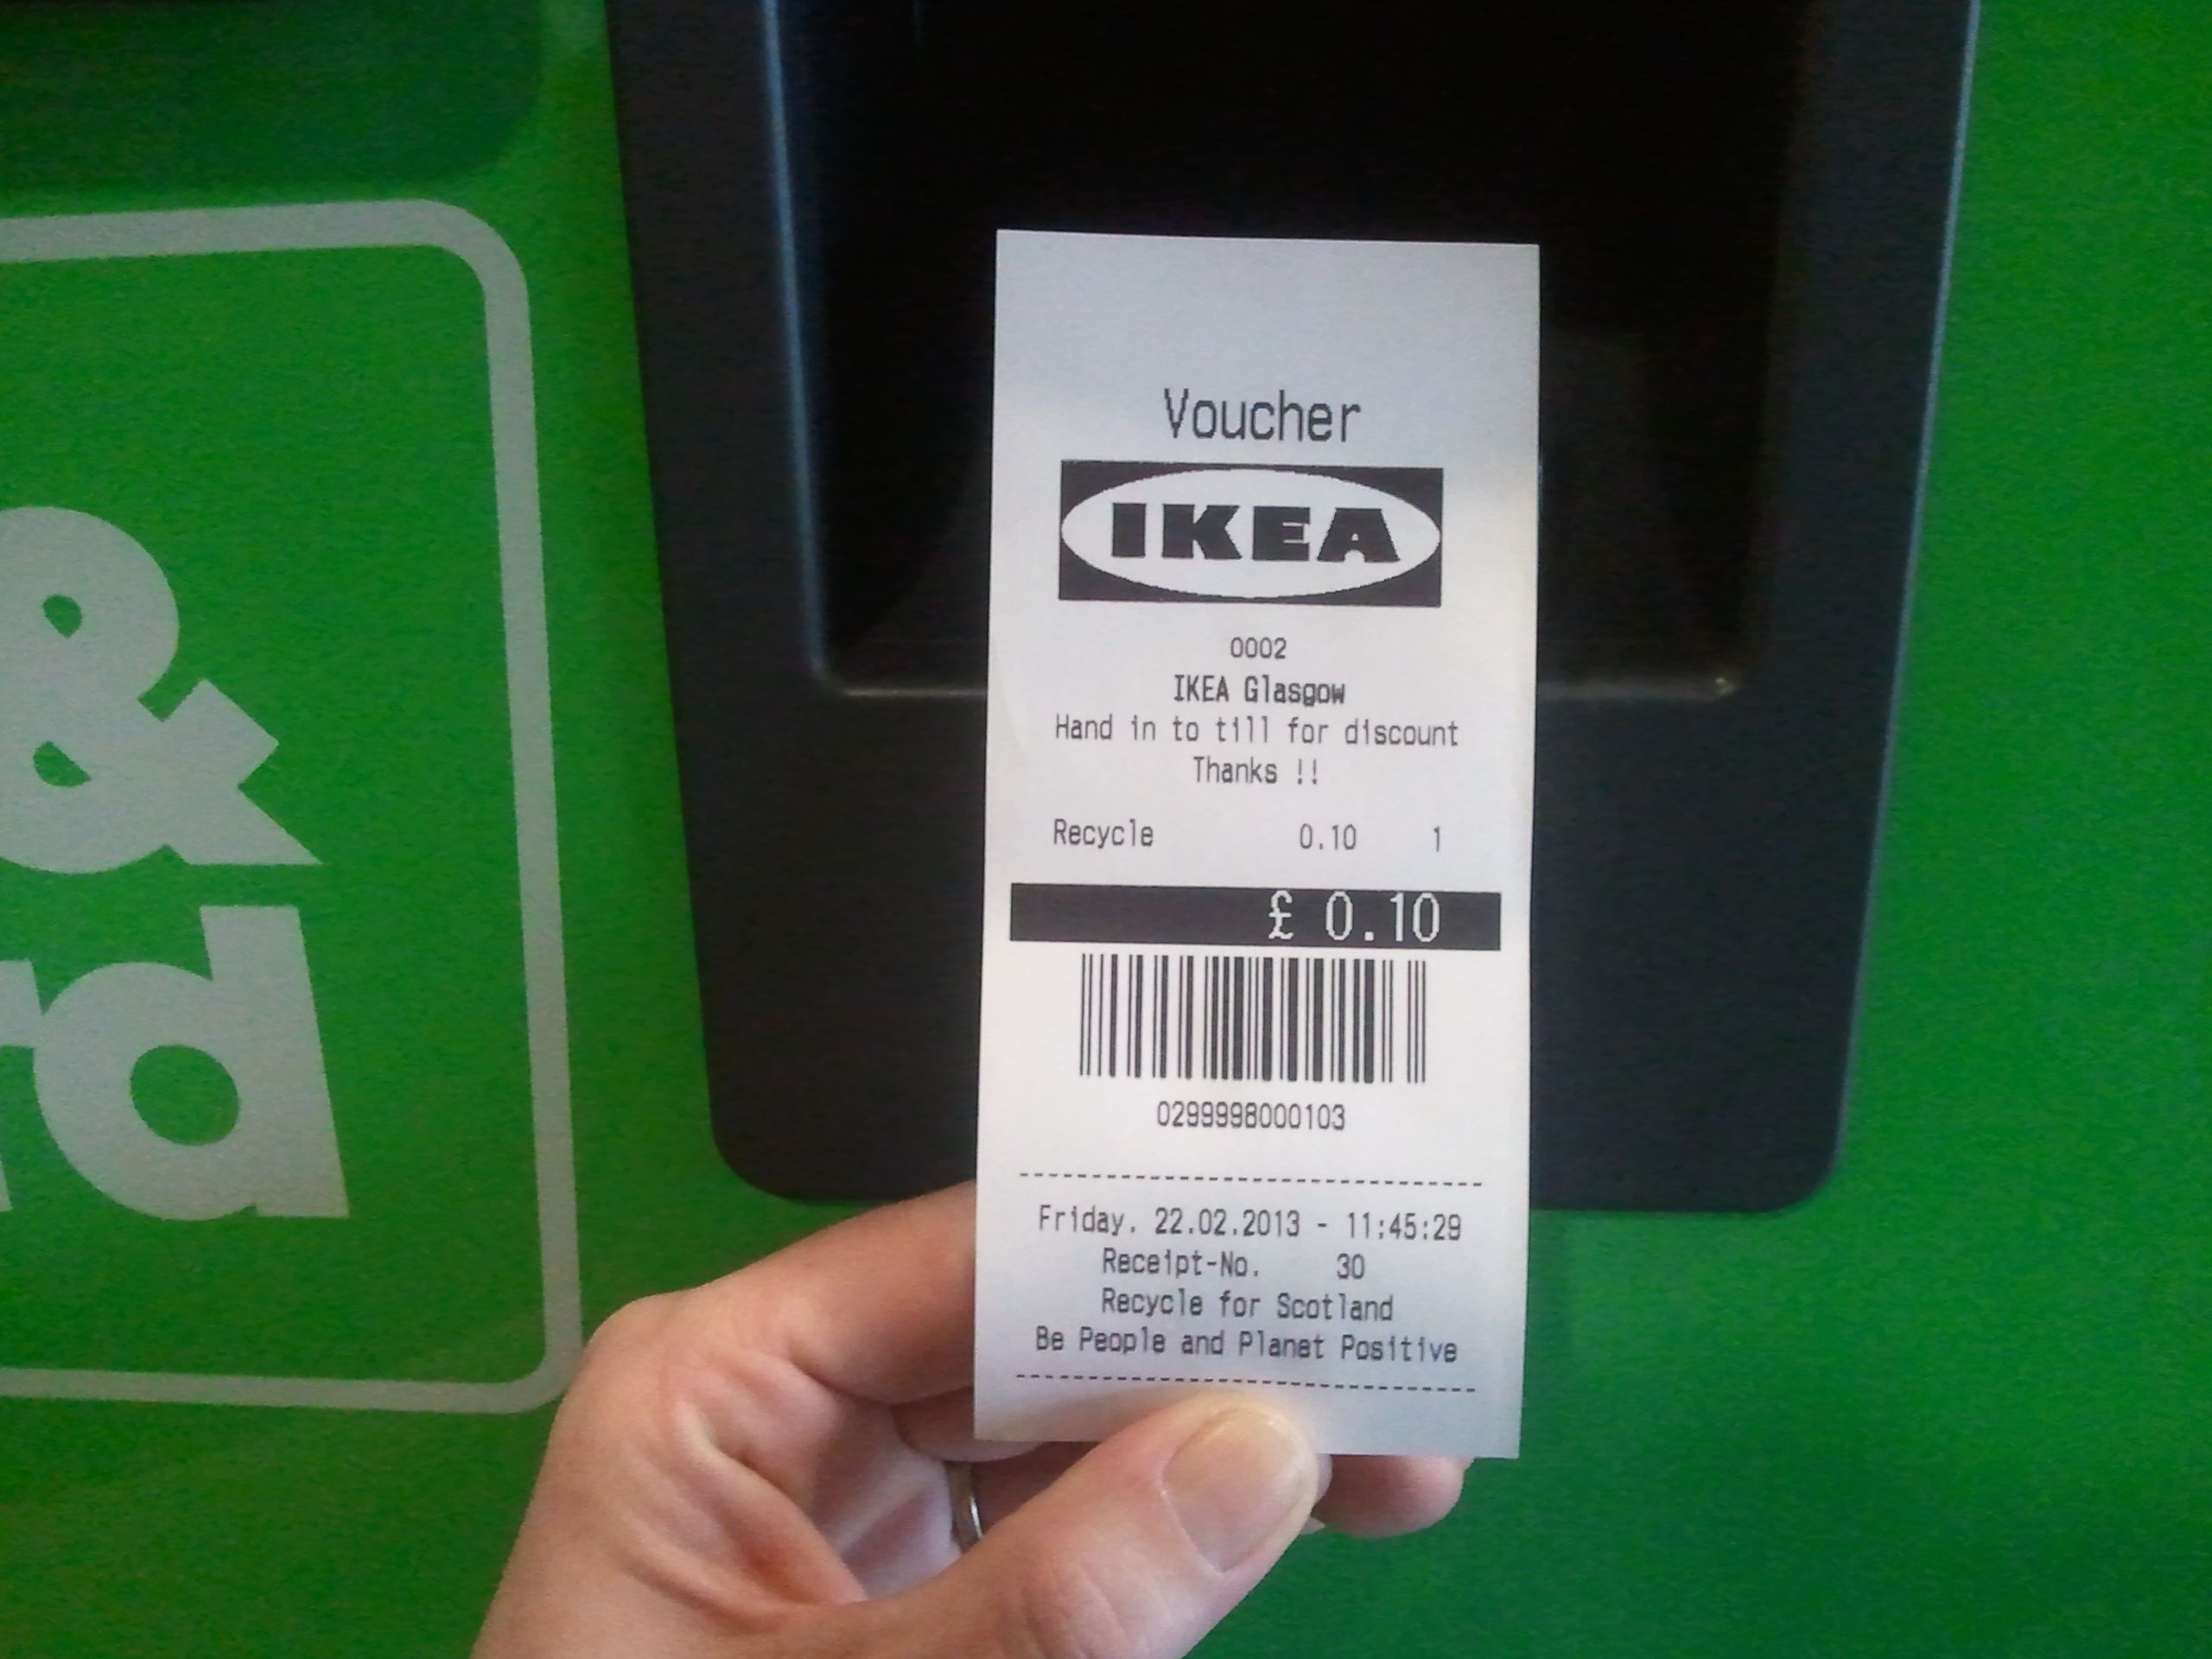 ikea reward recycling once an ikea used drink can or plastic